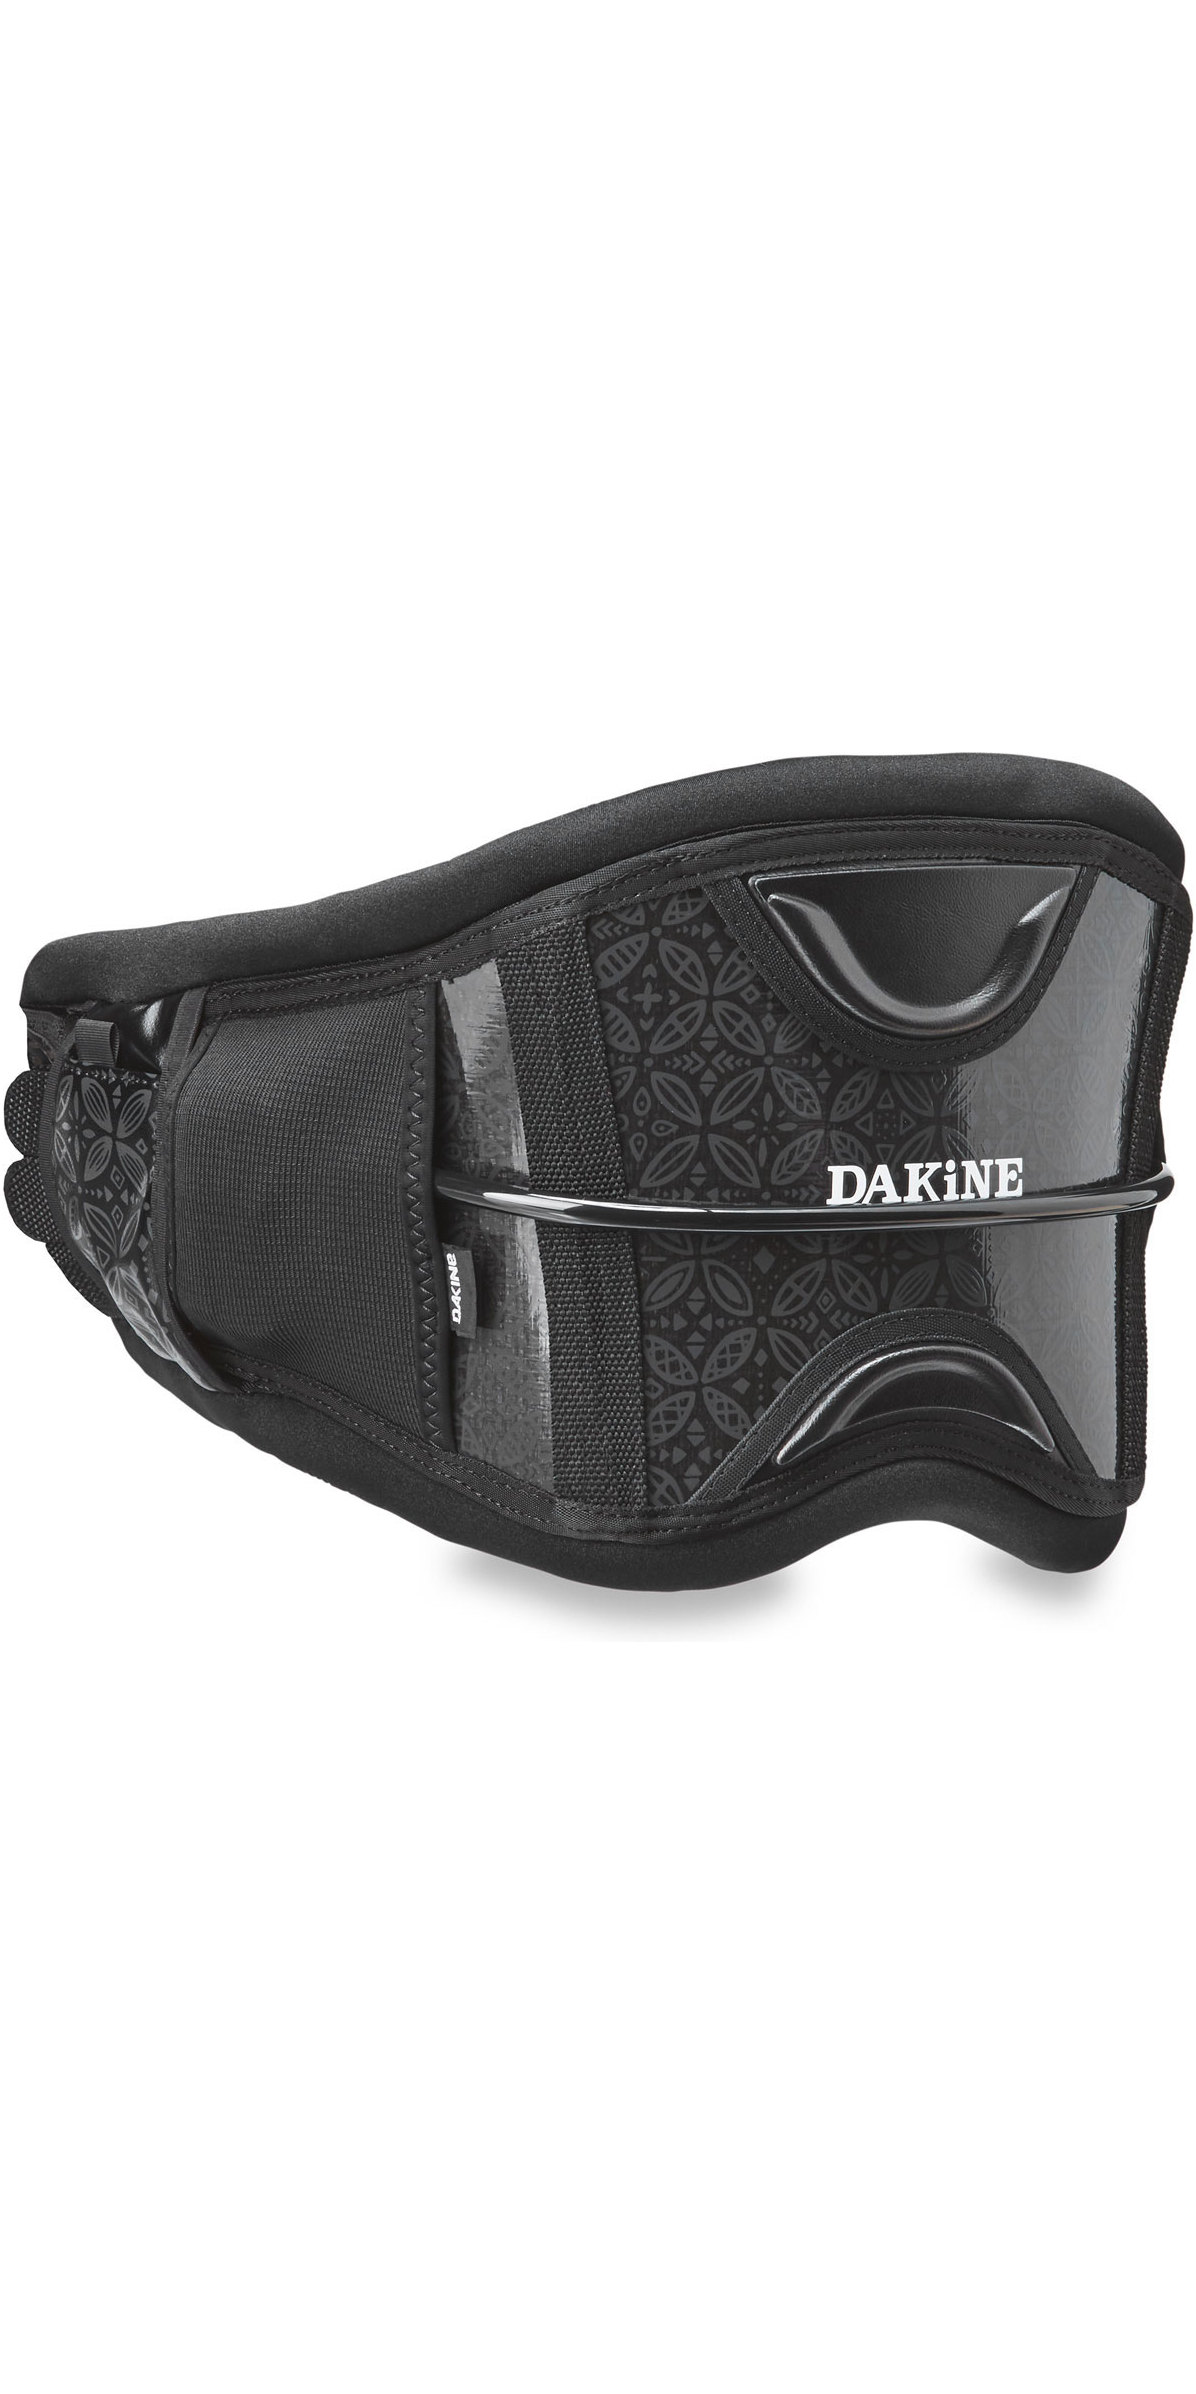 Bars 2018 Dakine Wahine Damen Kite Windsurf Harness Bay Islands 10001847